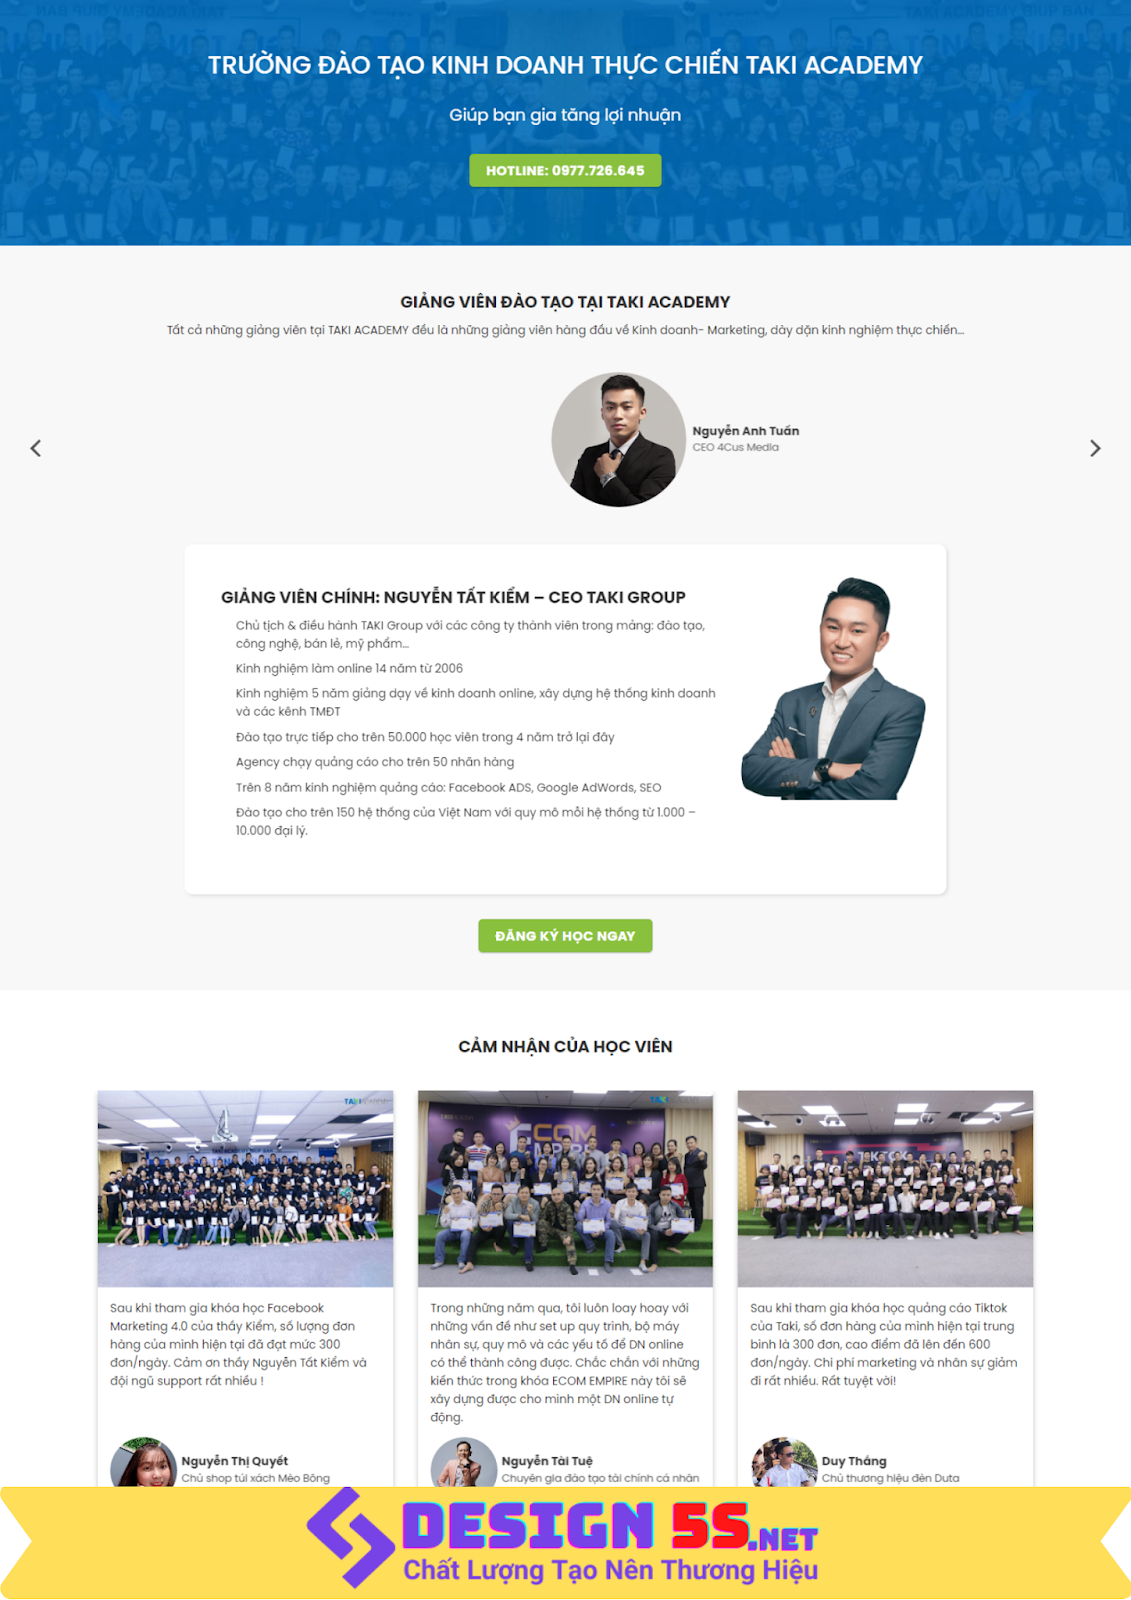 Theme blogspot landing page, dịch vụ marketing VSM42 - Ảnh 2